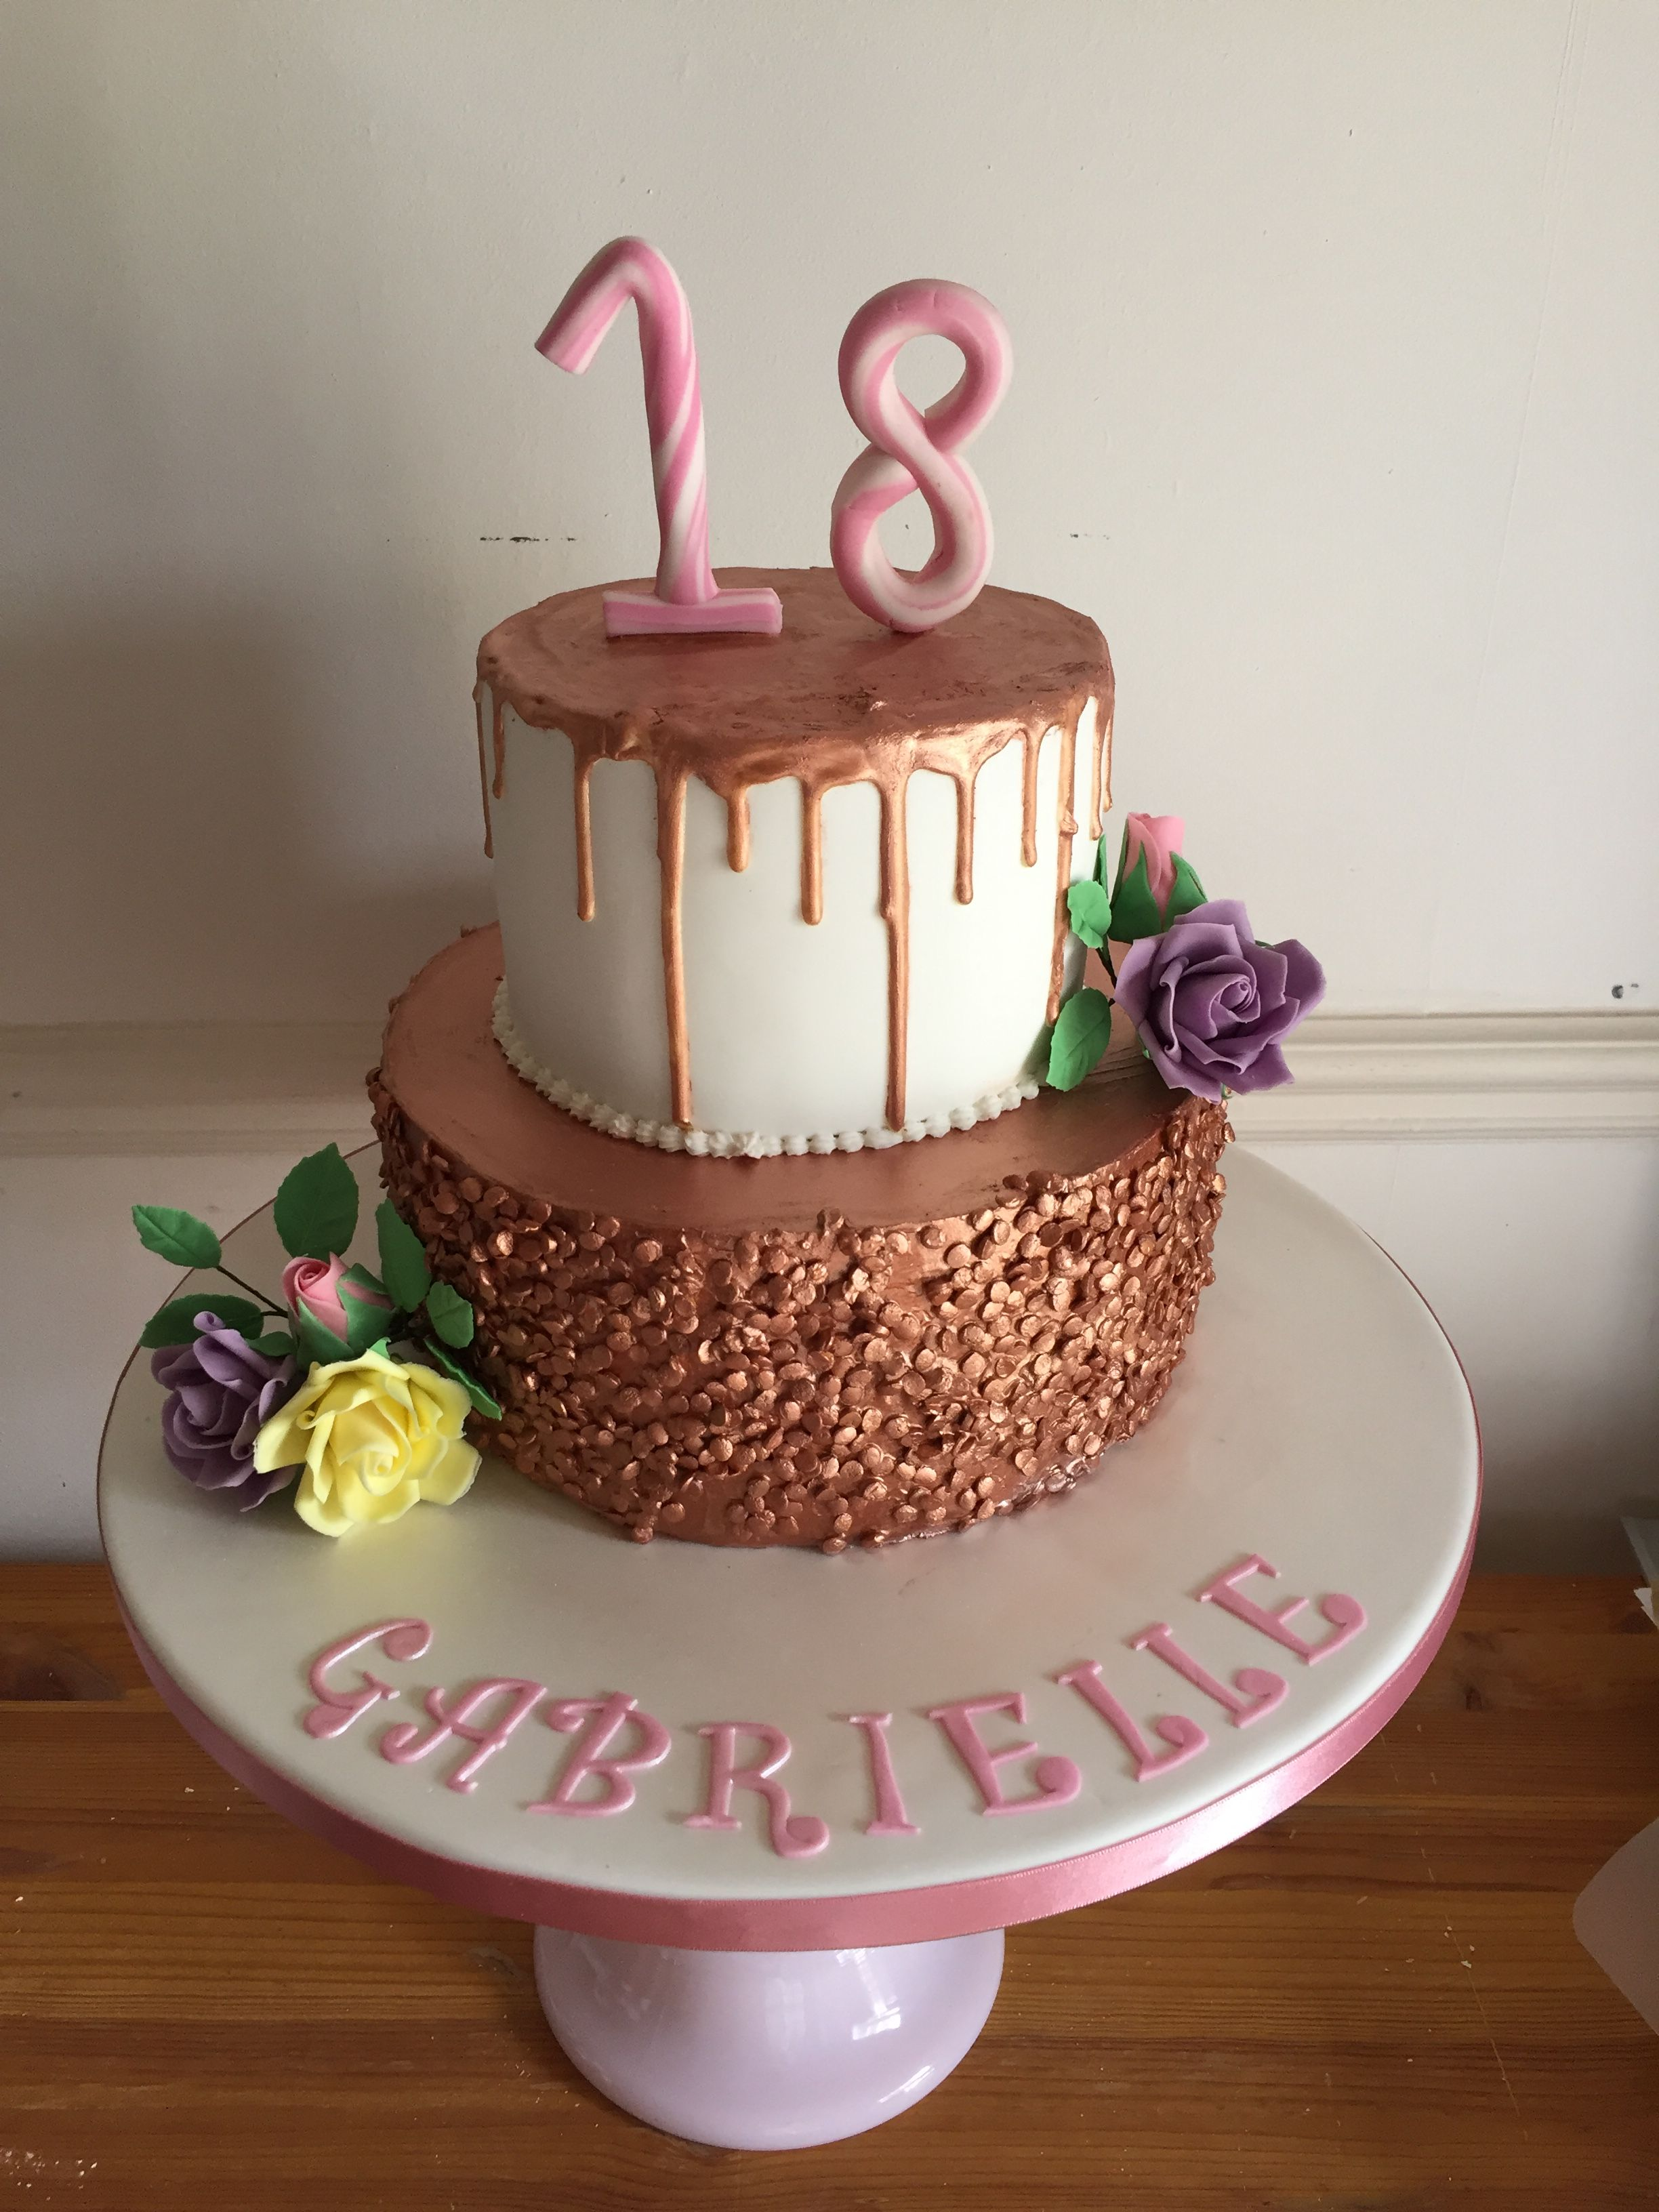 Pin by Noemi Safar on delicious 18th birthday cake, Cake